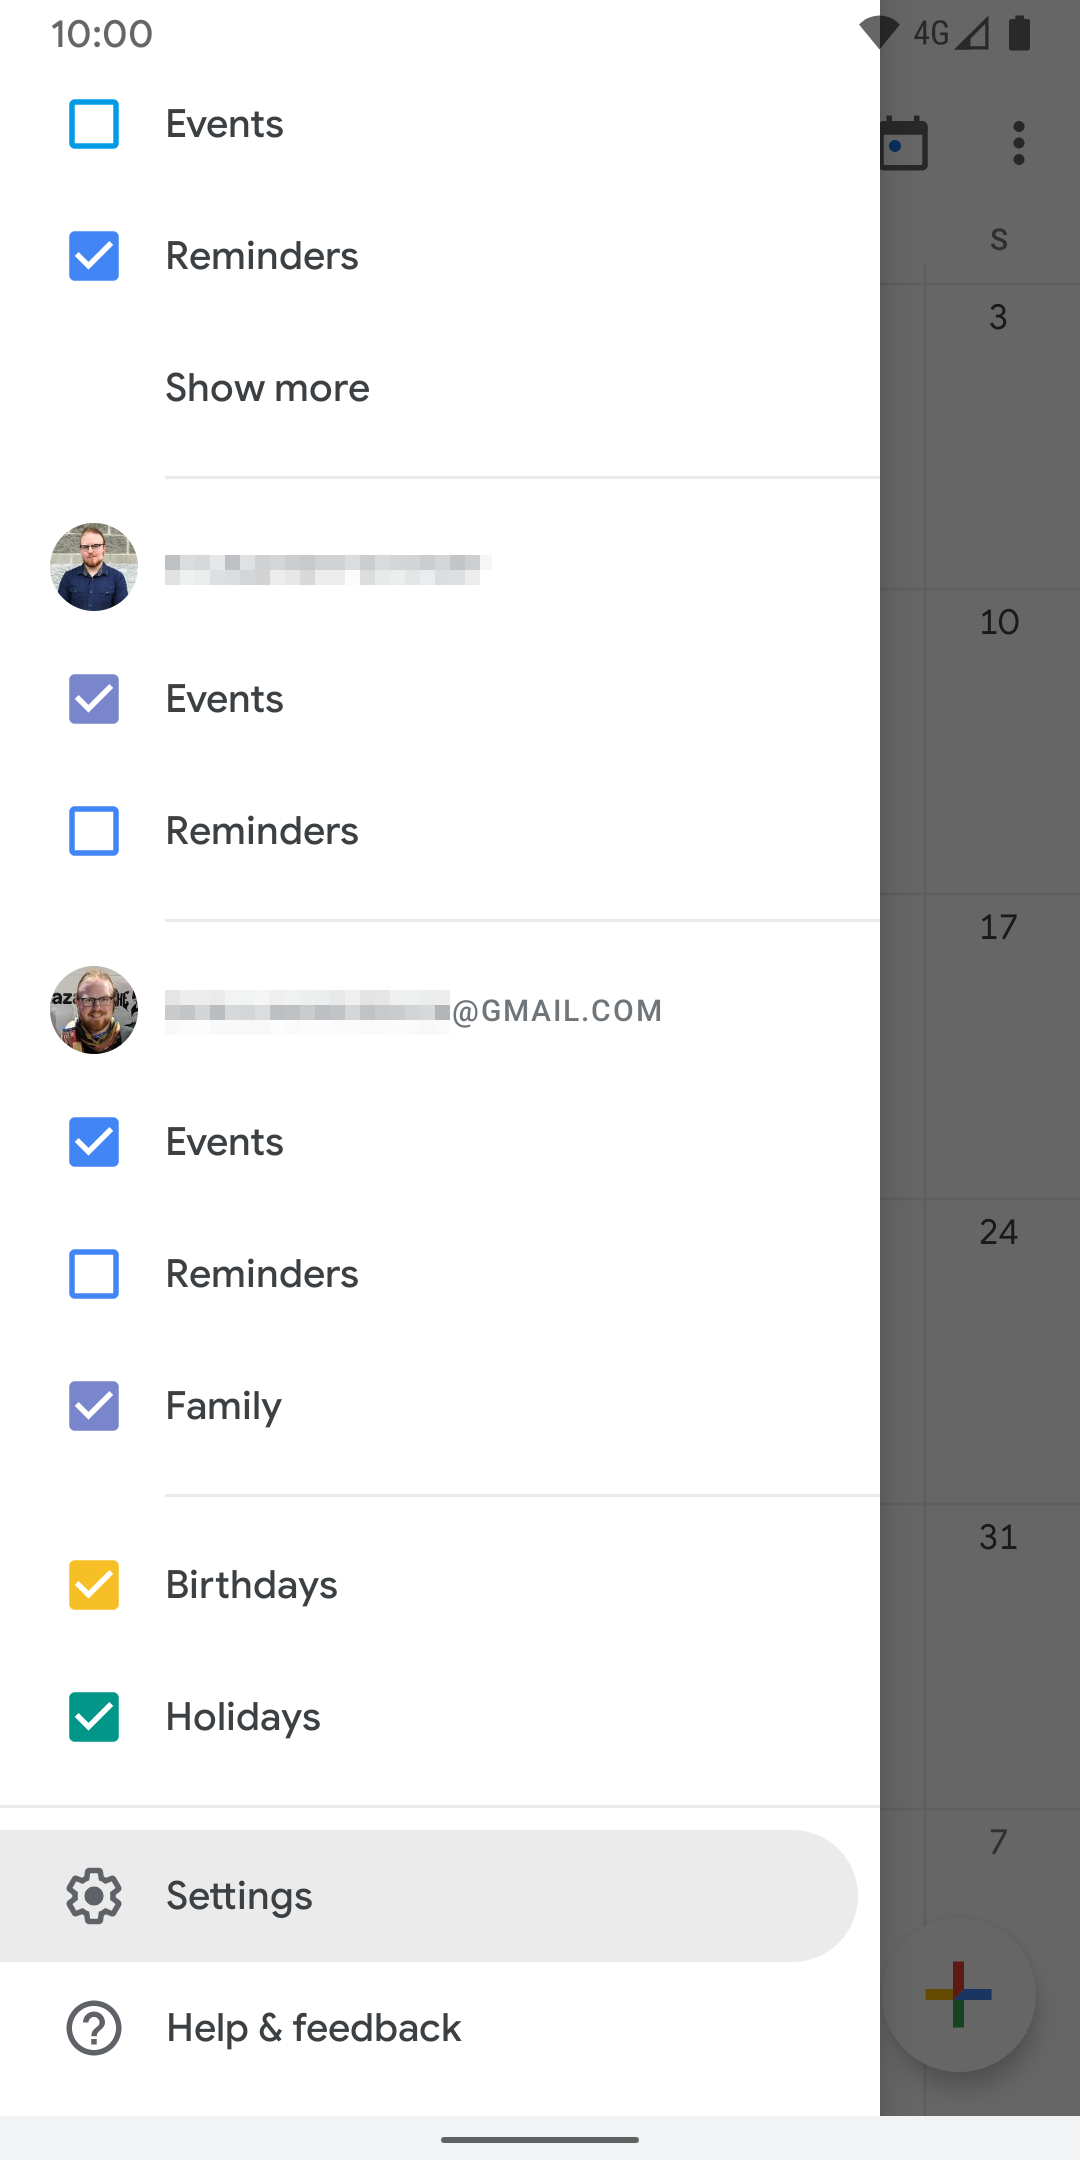 How to stop receiving spam events in your Google Calendar